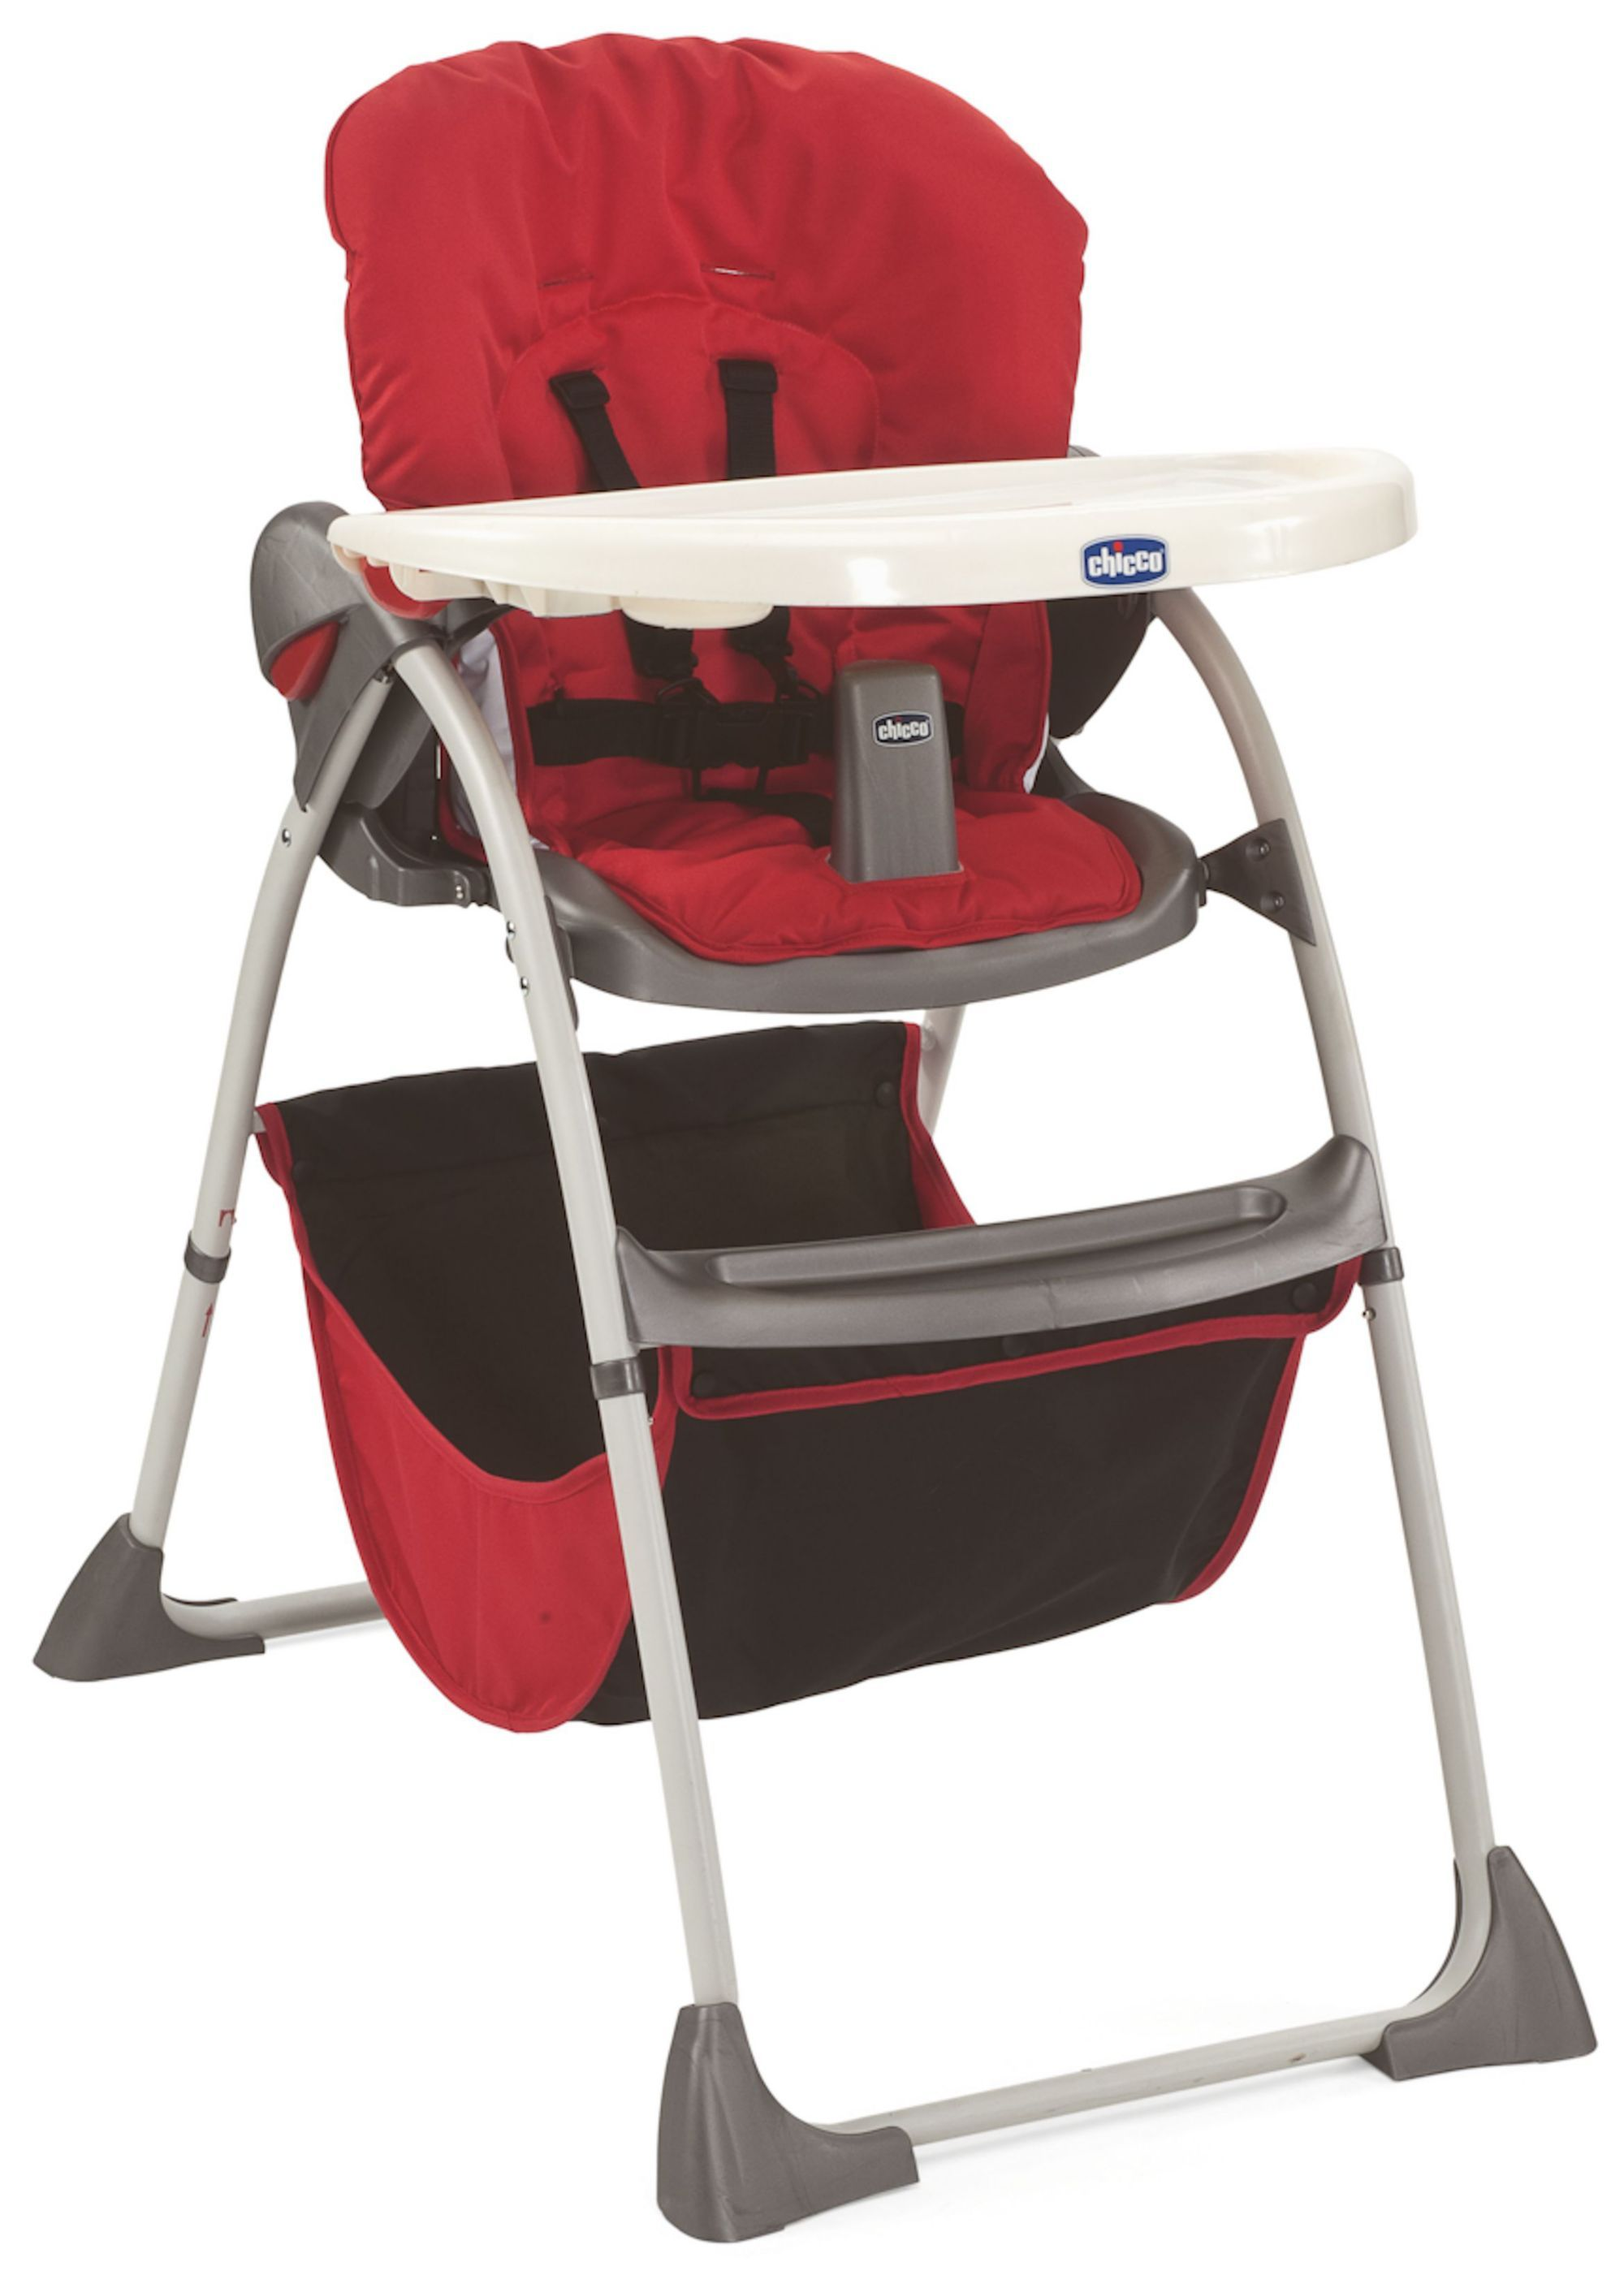 Chicco High Chairs Uk Dining Room Chair Seat Covers Happy Snack Highchair Red Inspiring Pinterest